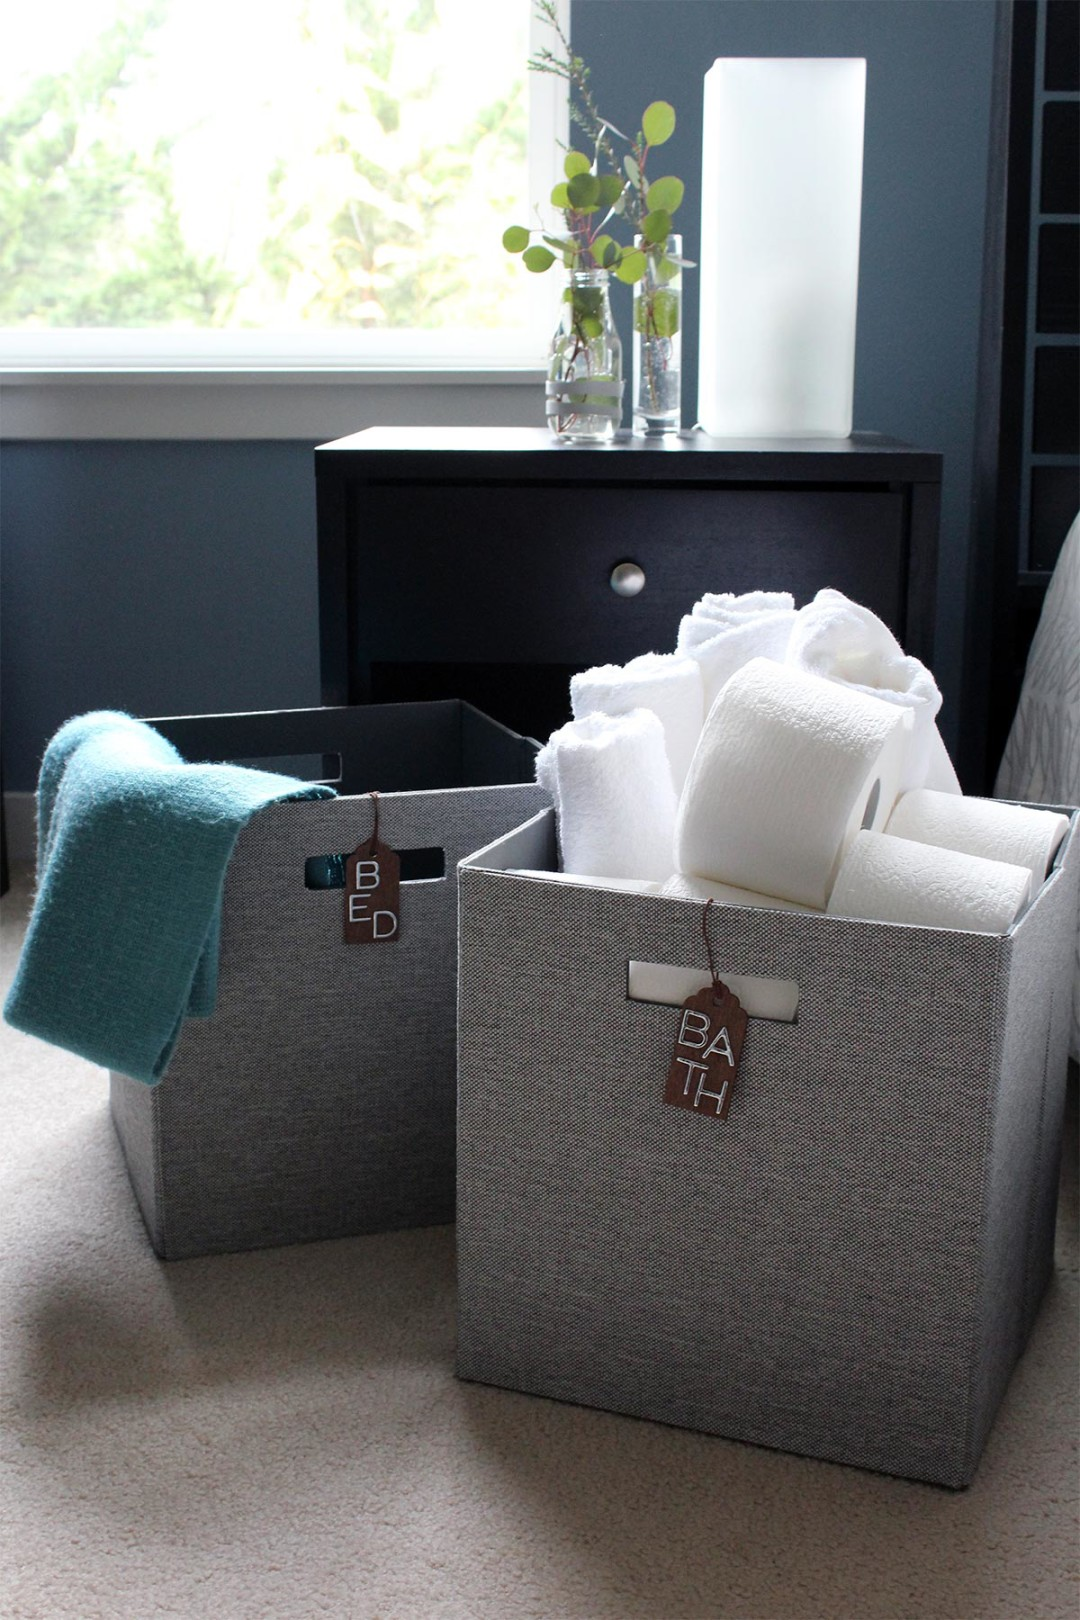 Getting organized with cottonelle